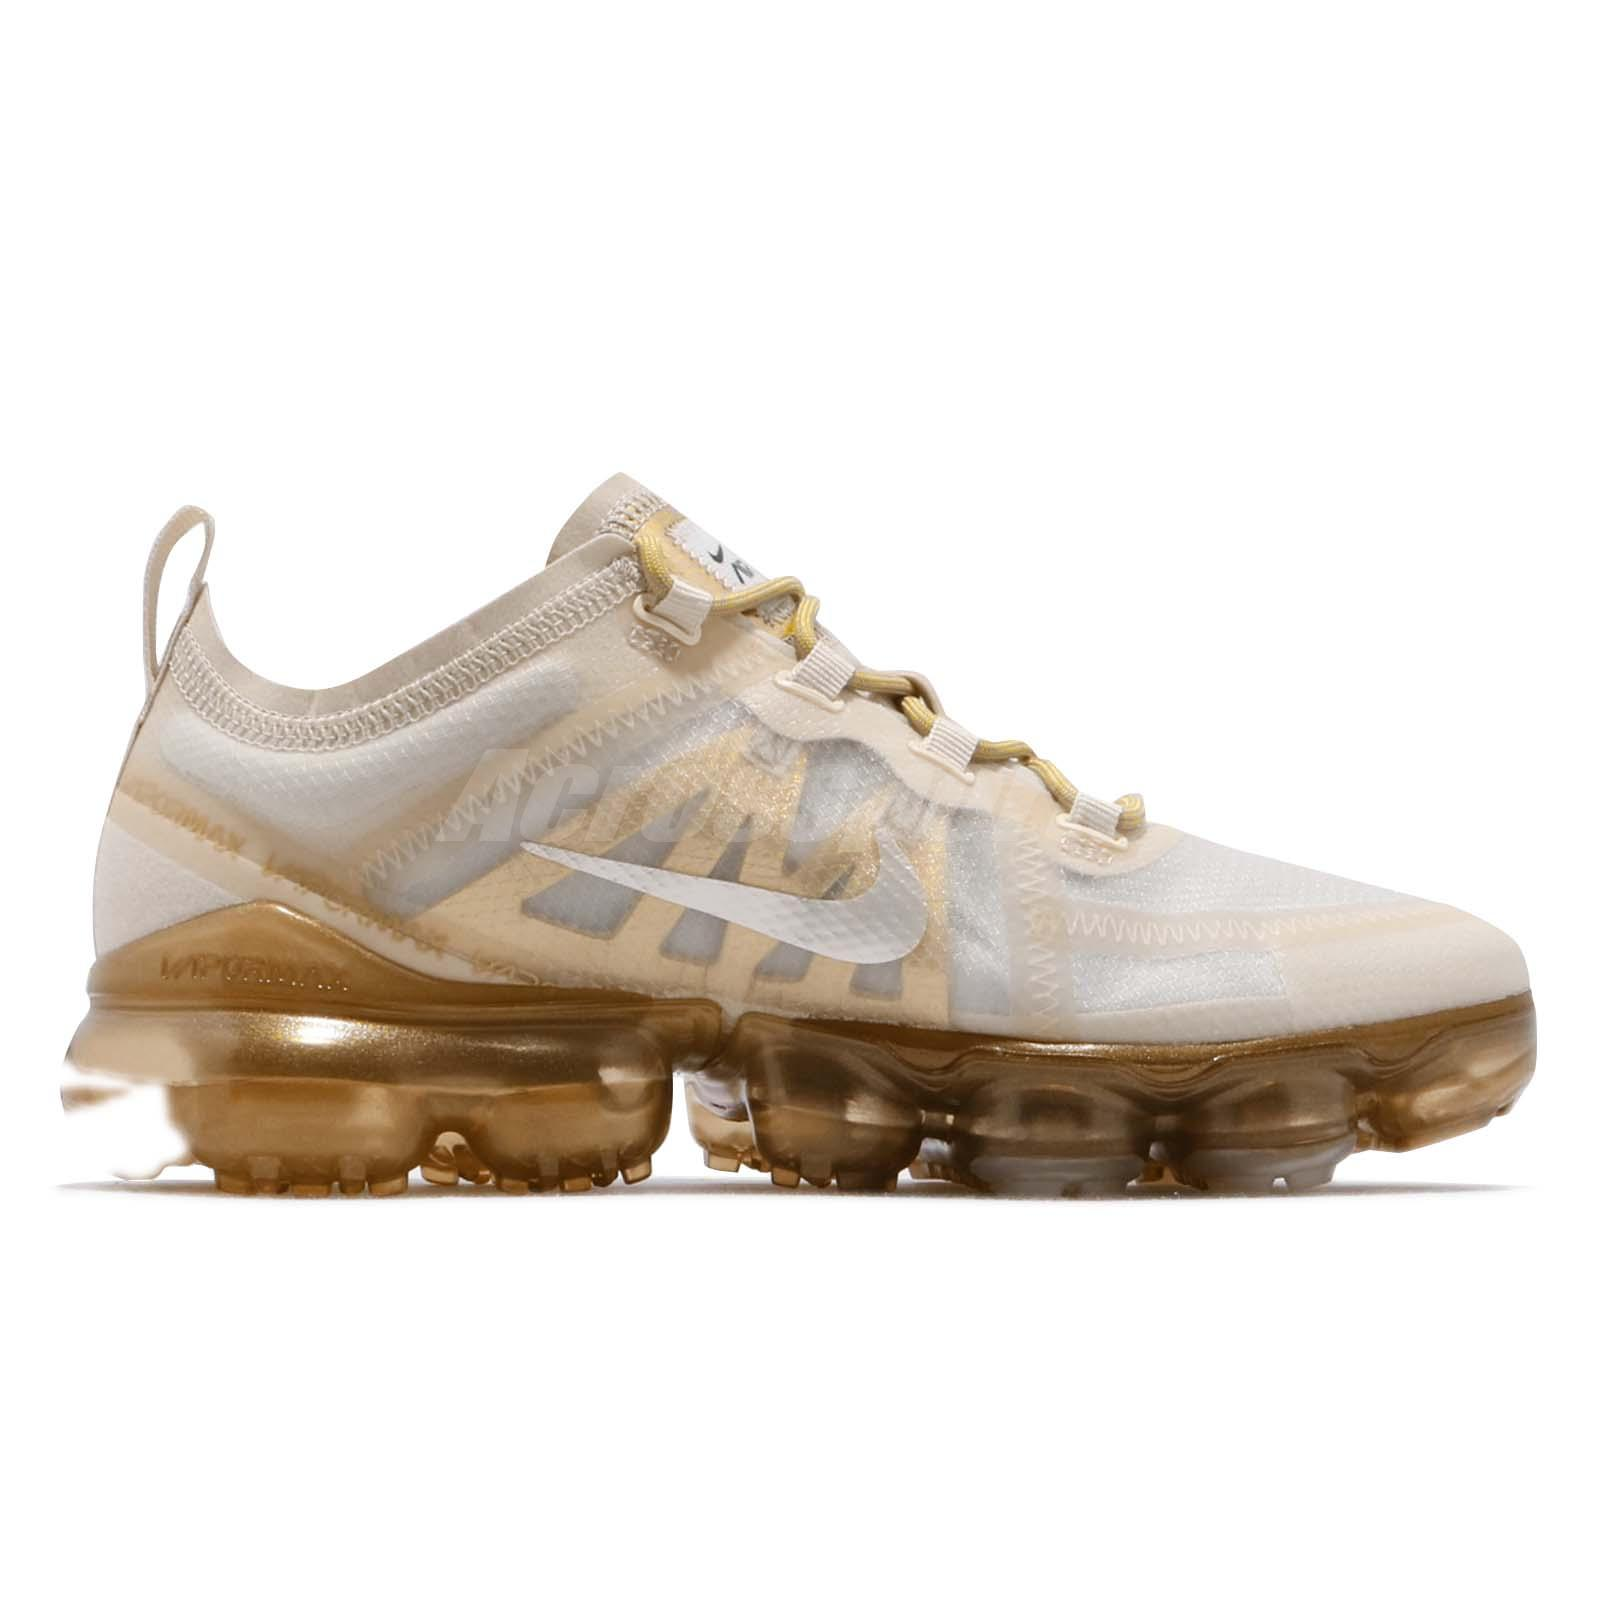 f1787c28e6 Nike Wmns Air Vapormax 2019 Cream Sail Light Bone Gold Women Shoes ...